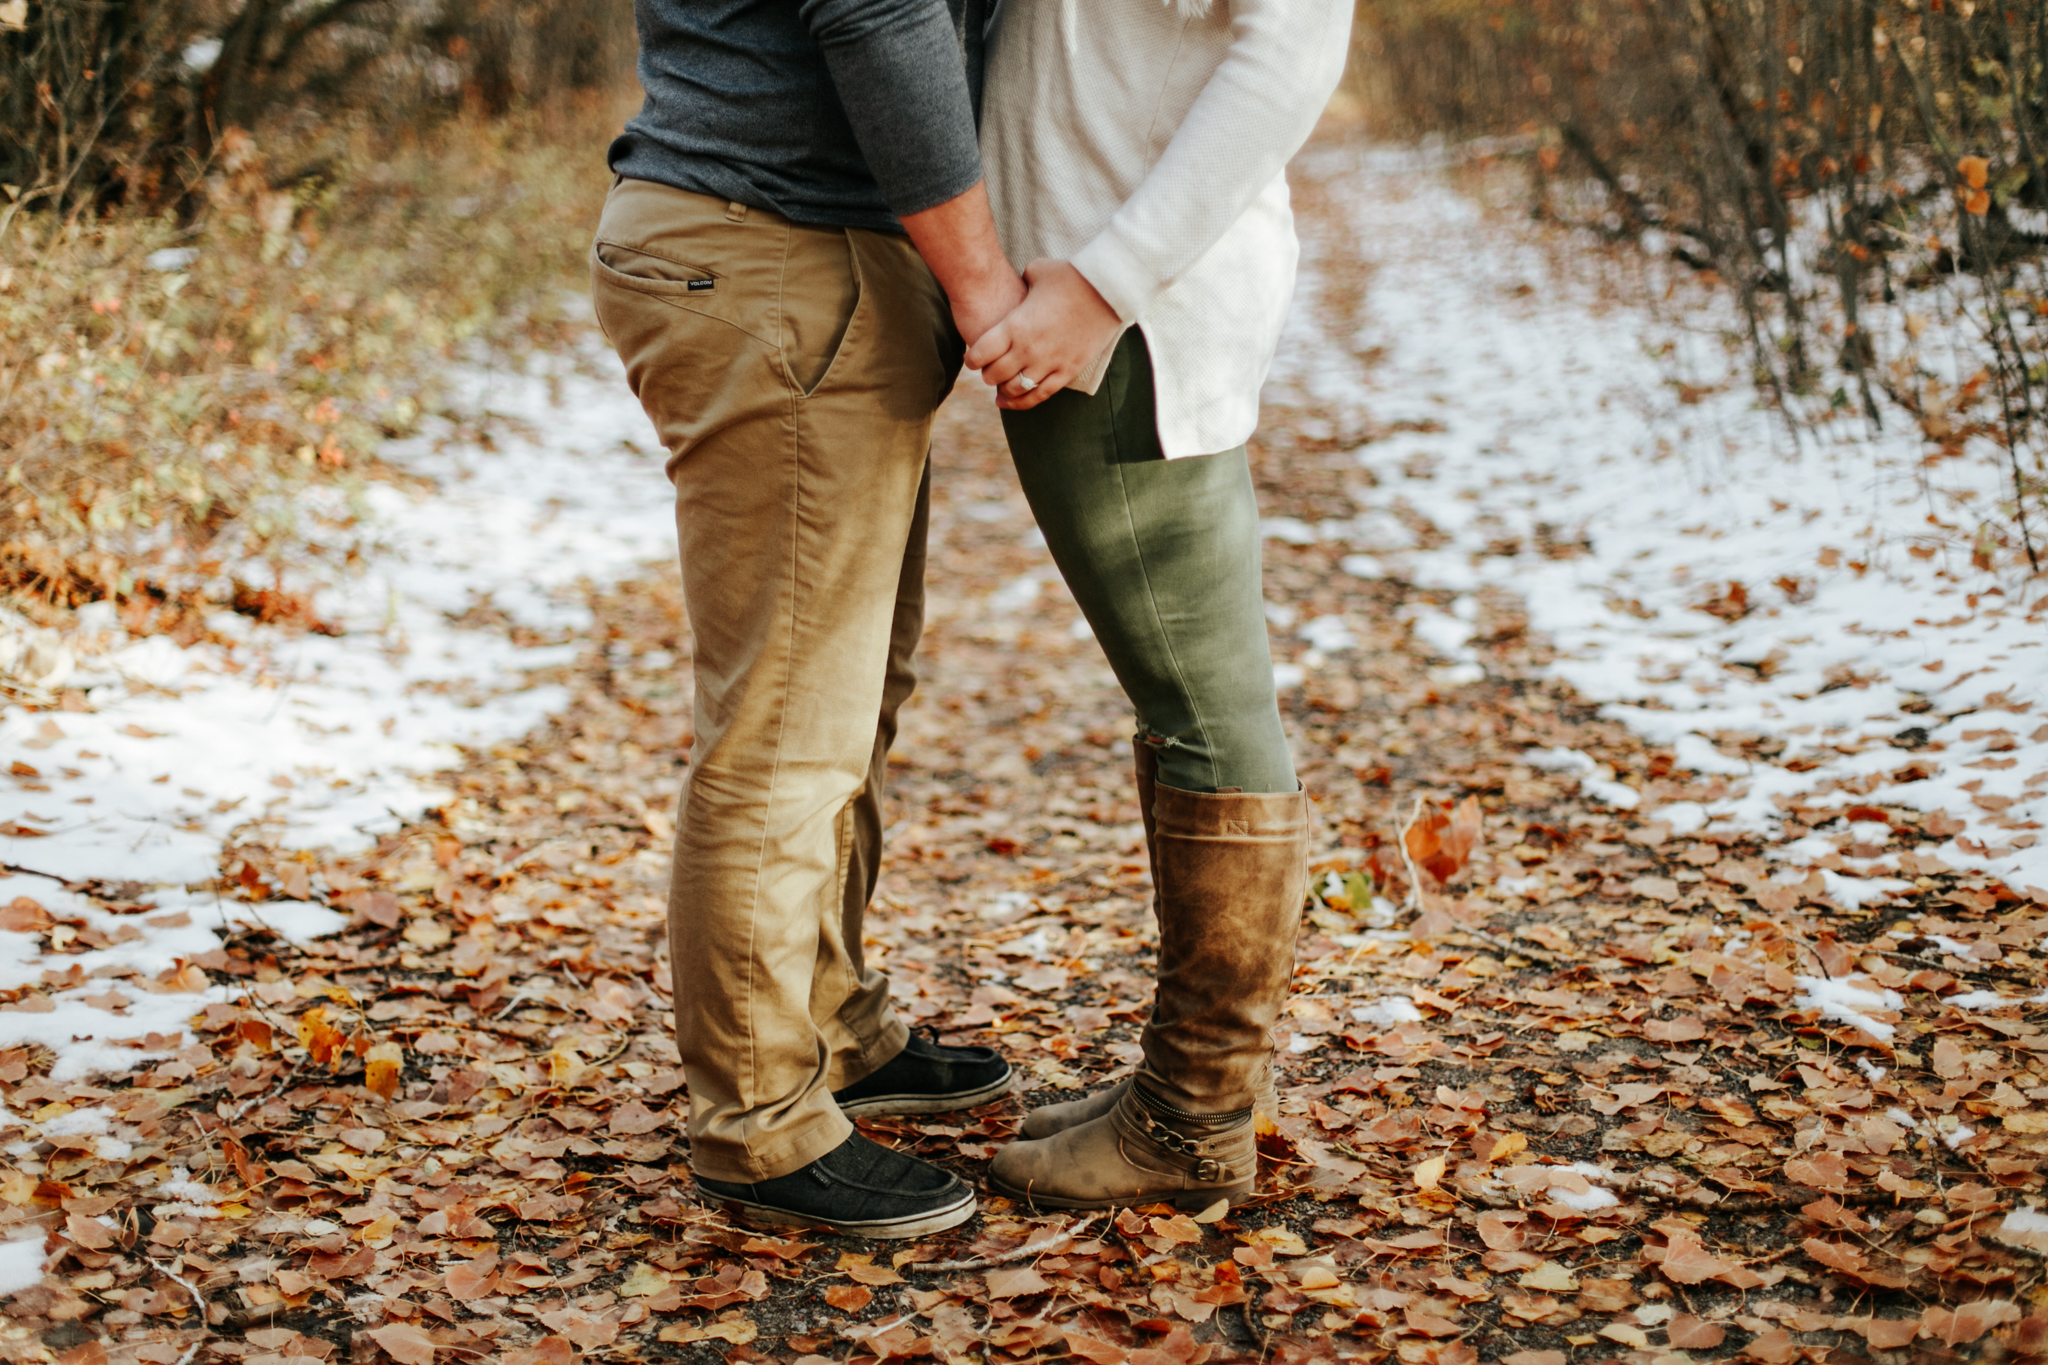 lethbridge-photographer-love-and-be-loved-photography-christy-bryan-fall-autumn-engagement-photo-image-picture-9.jpg